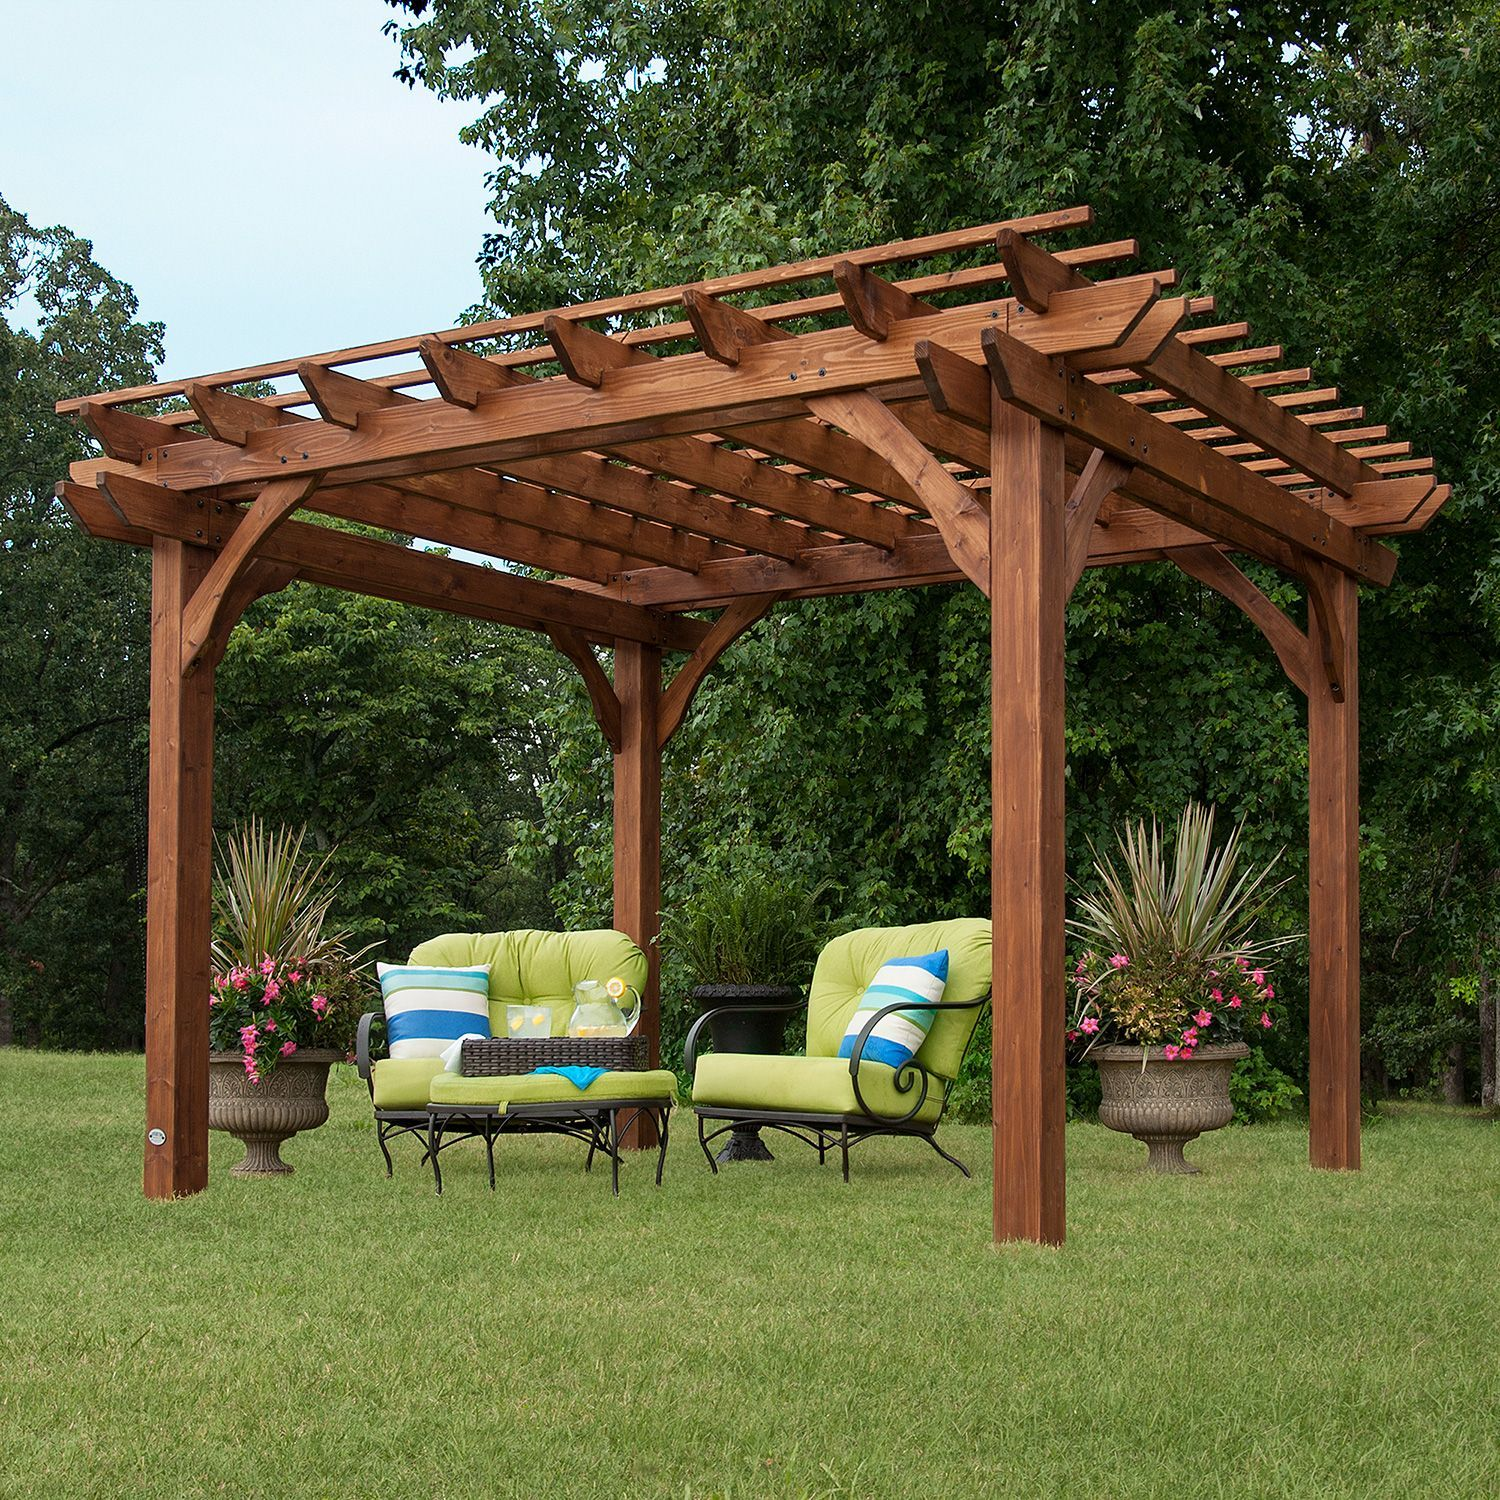 10 X 12 Cedar Pergola Sam S Club Outdoor Pergola Backyard Pergola Backyard